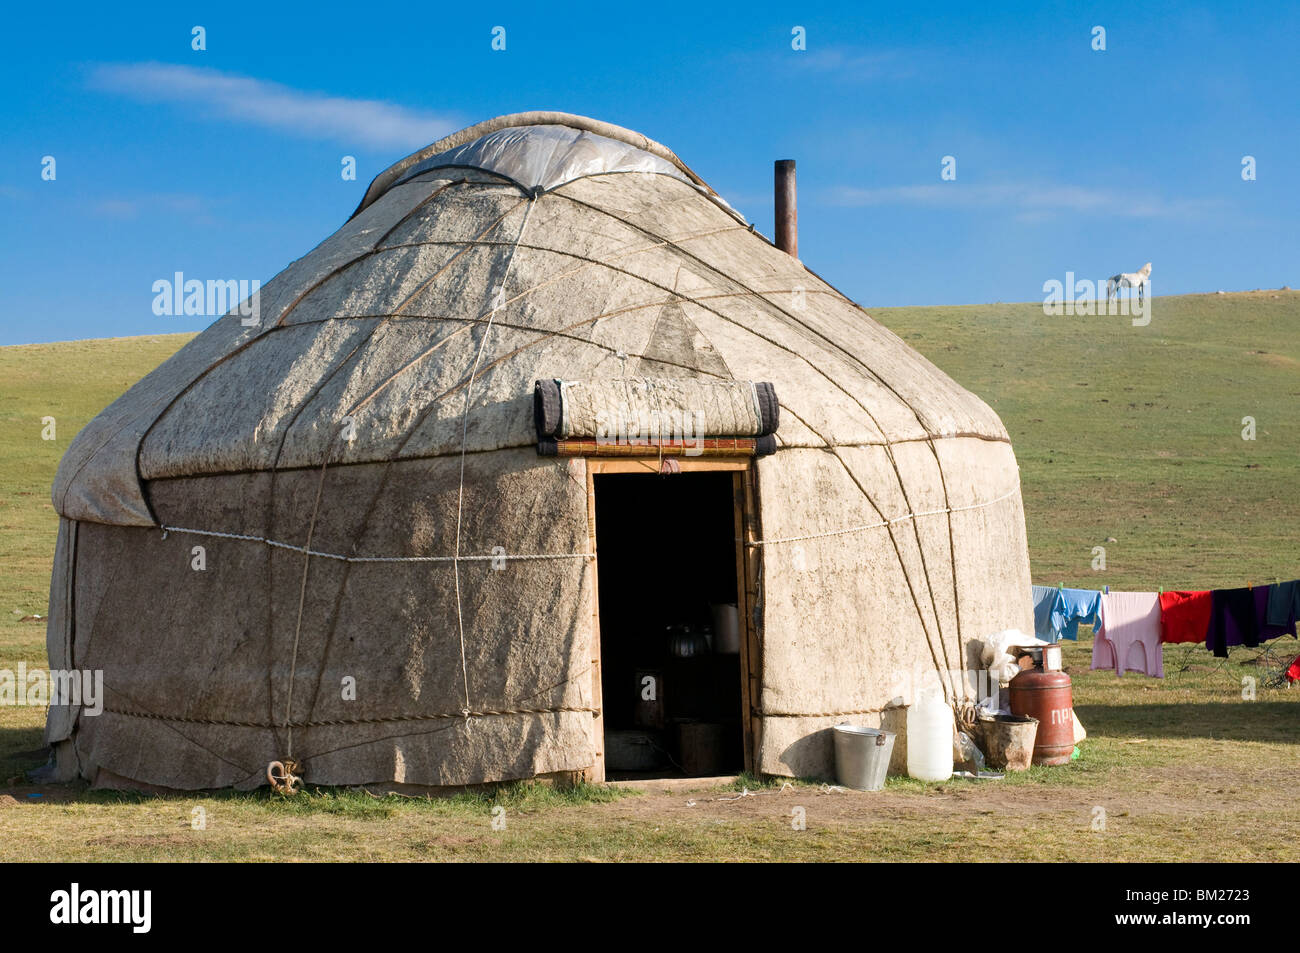 Yurts tents of Nomads at Song Kol Kyrgyzstan Central Asia & Yurts tents of Nomads at Song Kol Kyrgyzstan Central Asia Stock ...